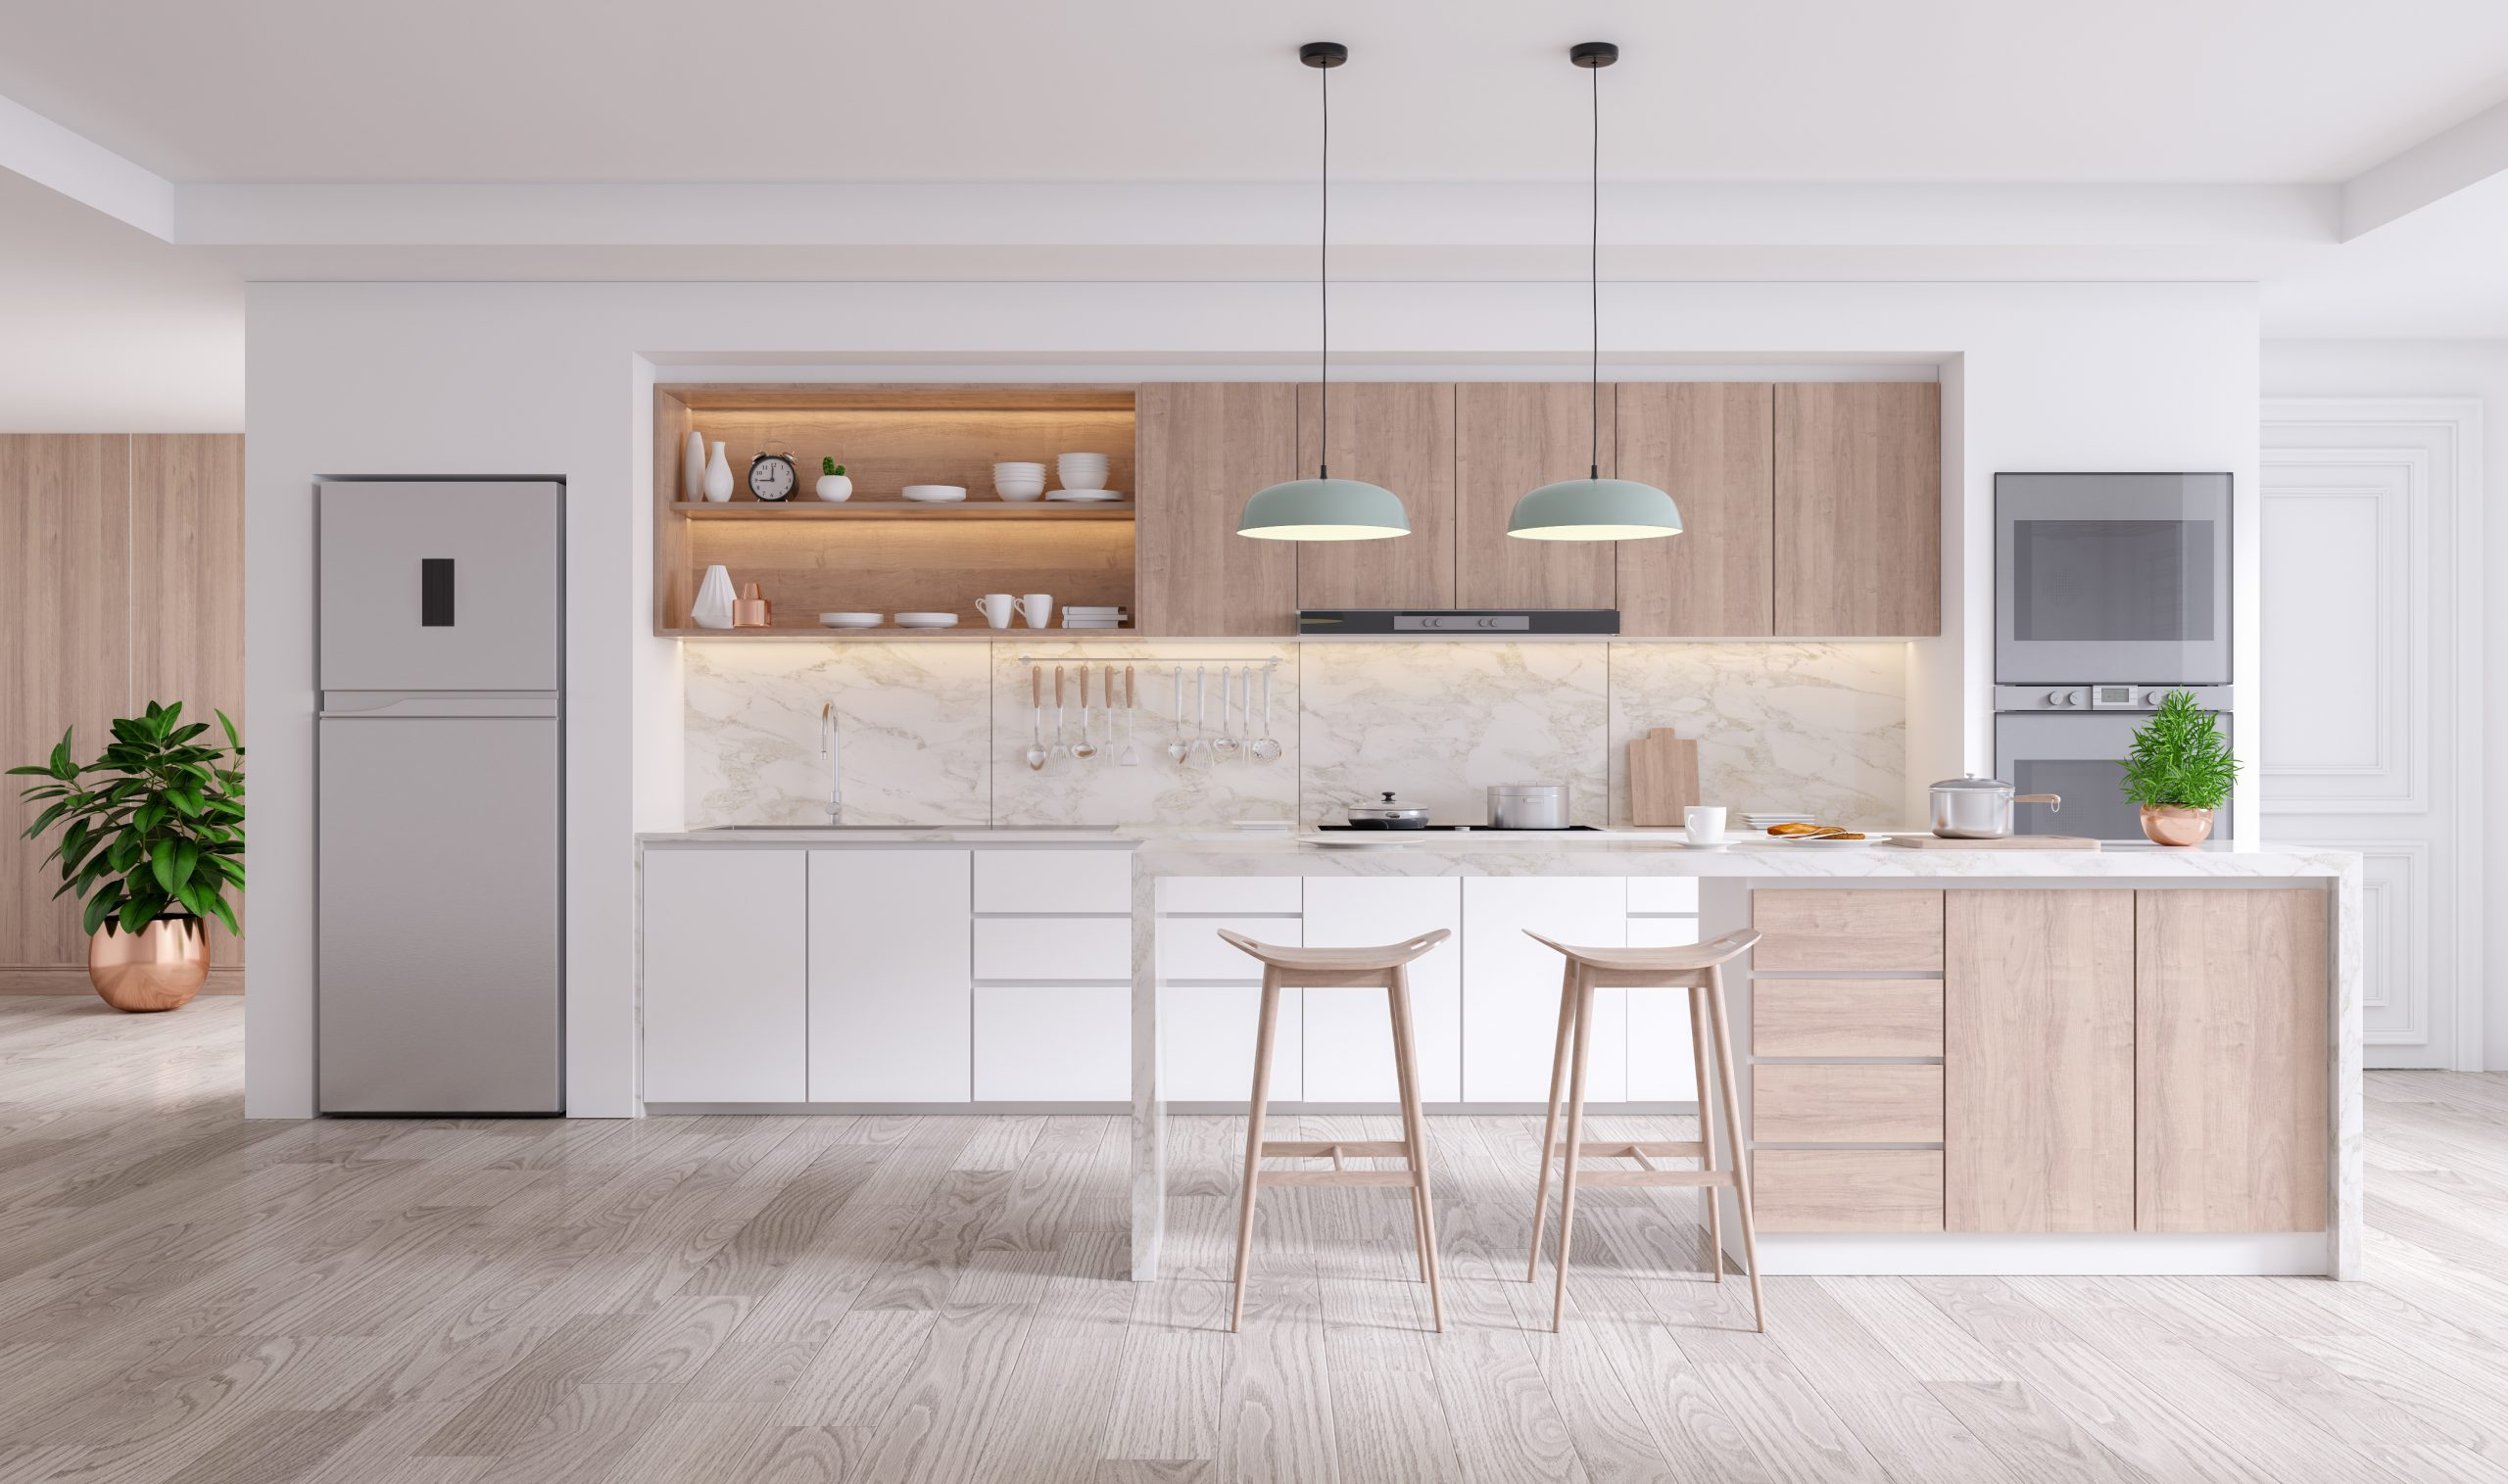 elegant contemporary kitchen room interior .3drender